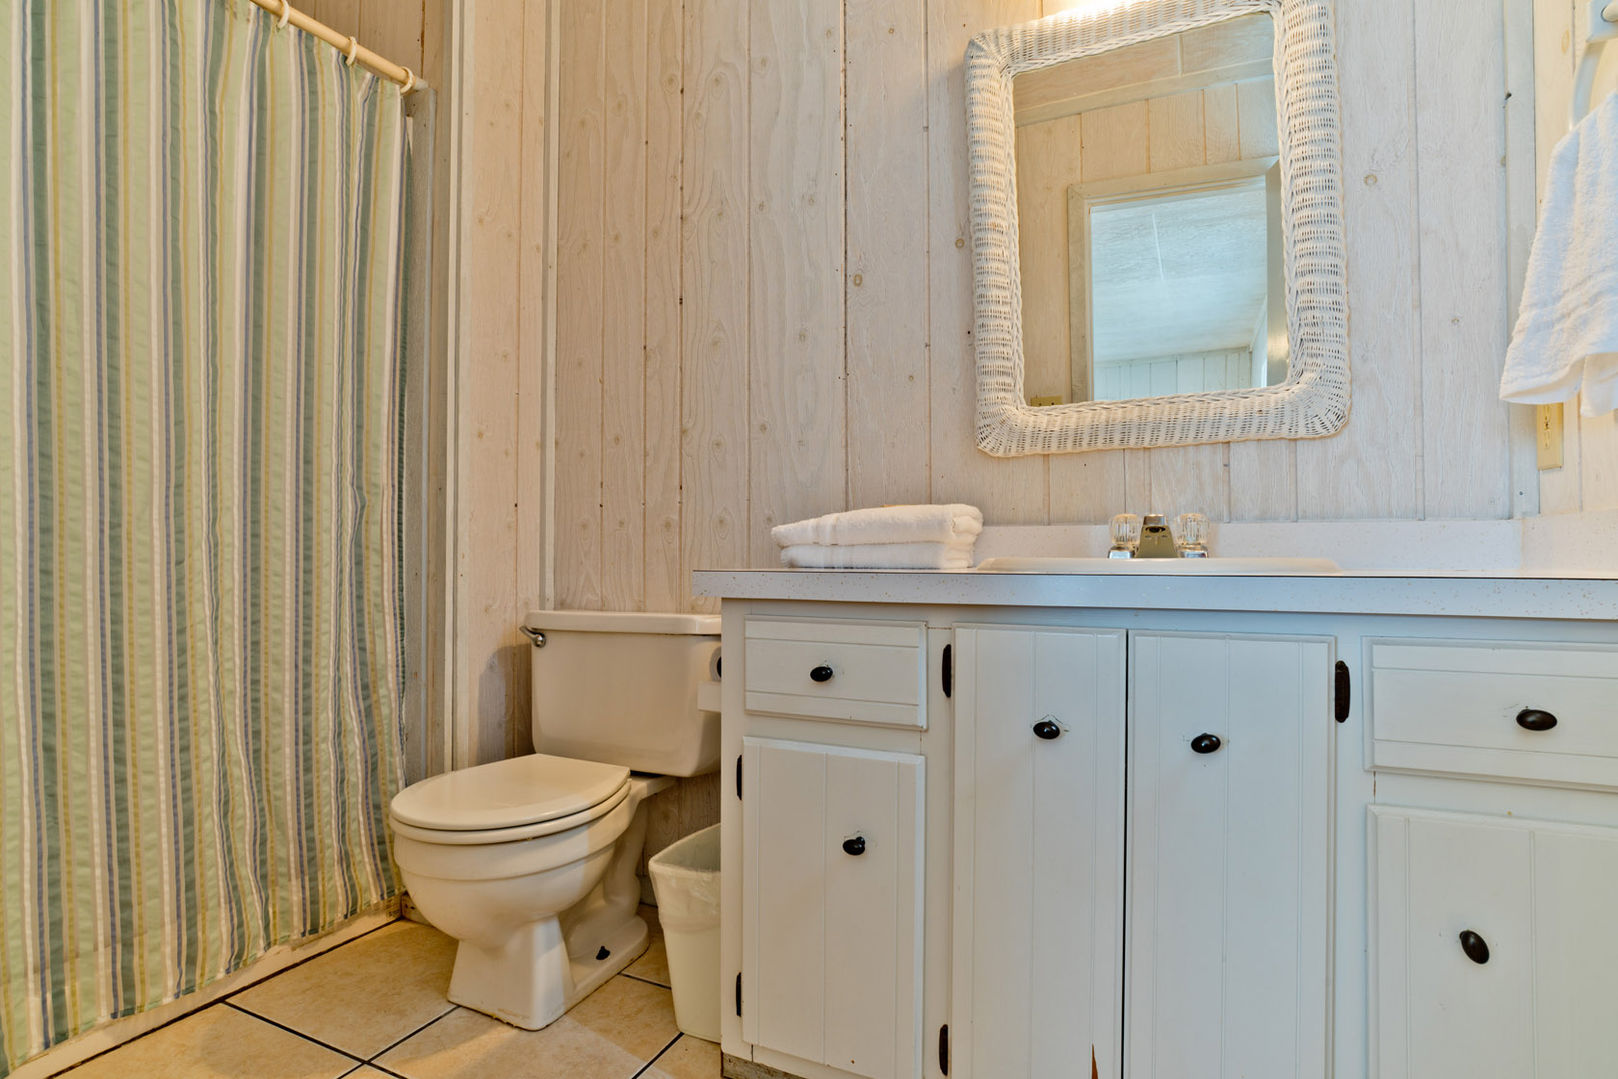 The full bathroom is private to the guest bedroom